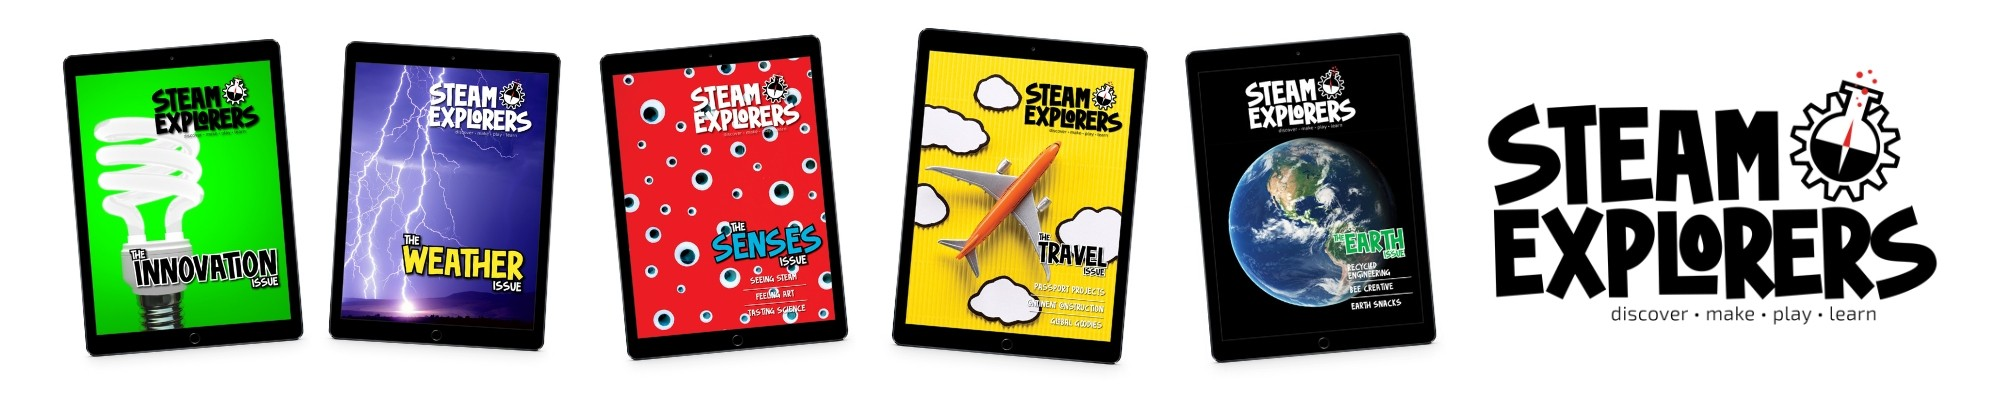 ipads with different STEAM Explorers issues, hands-on STEAM learning guides for kids